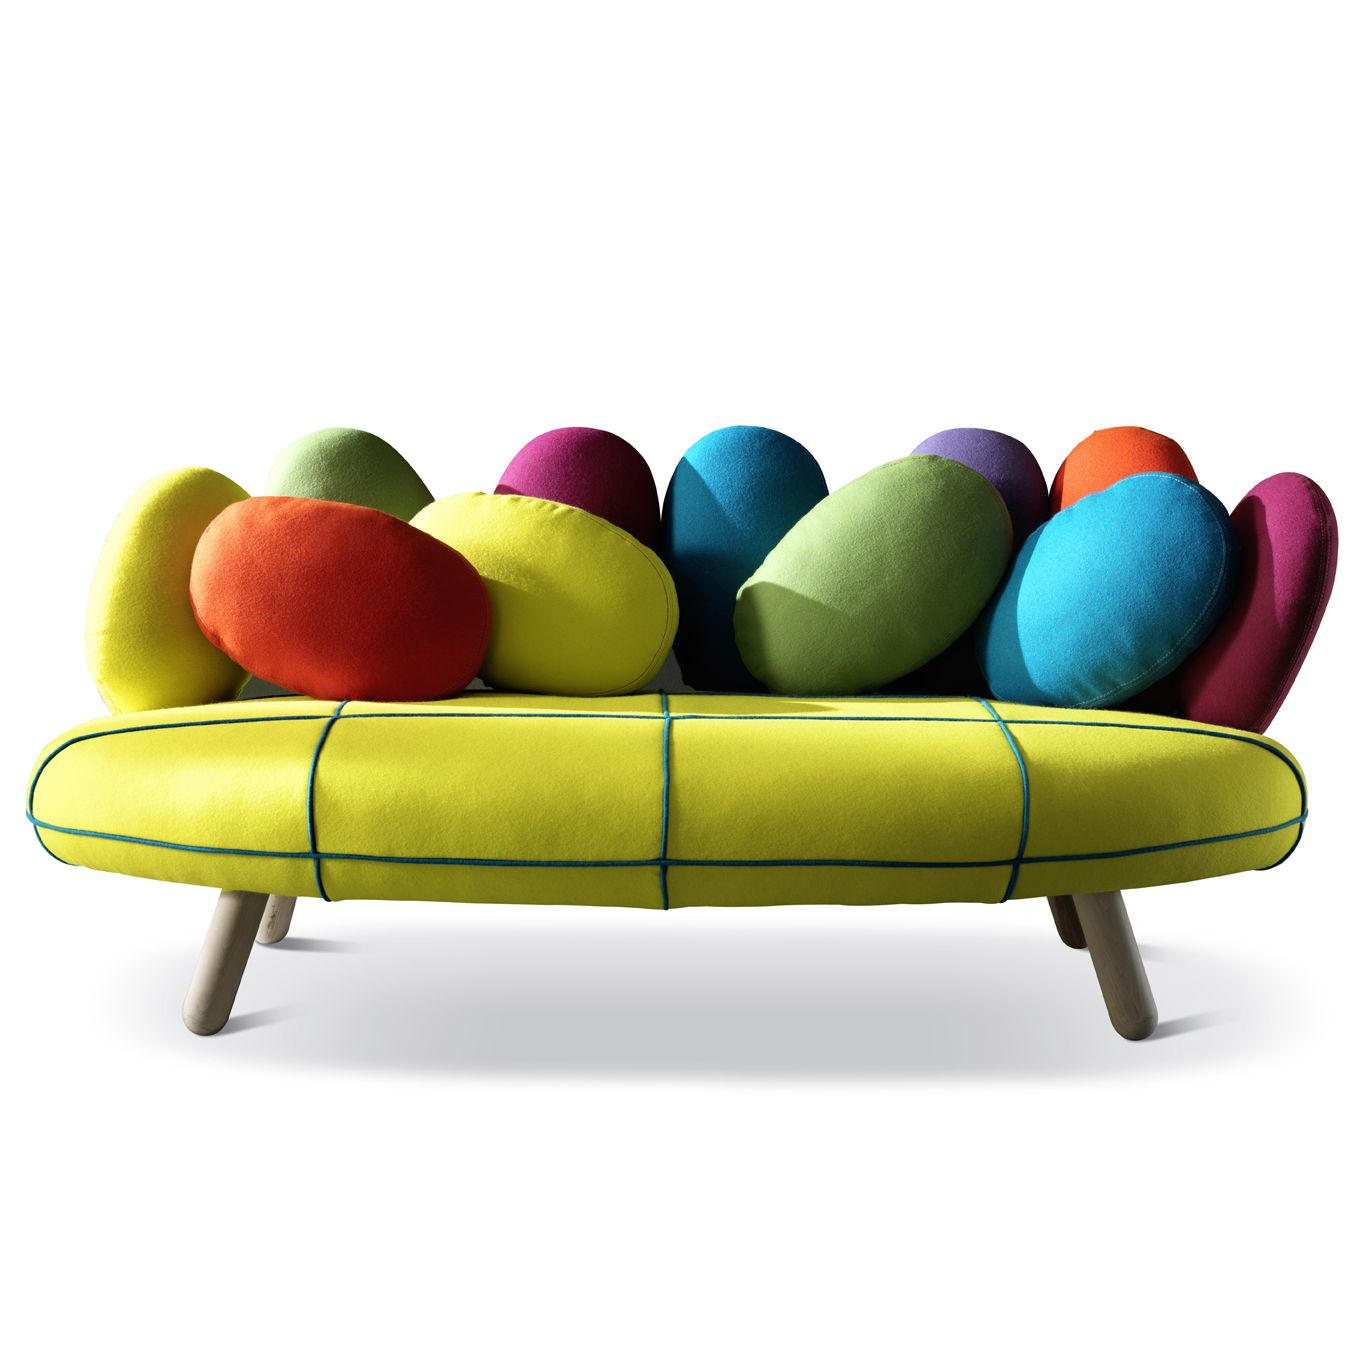 2p Sofa By Adrenalina Colourful Design Funky Lounge Furniture At My Italian Living Ltd